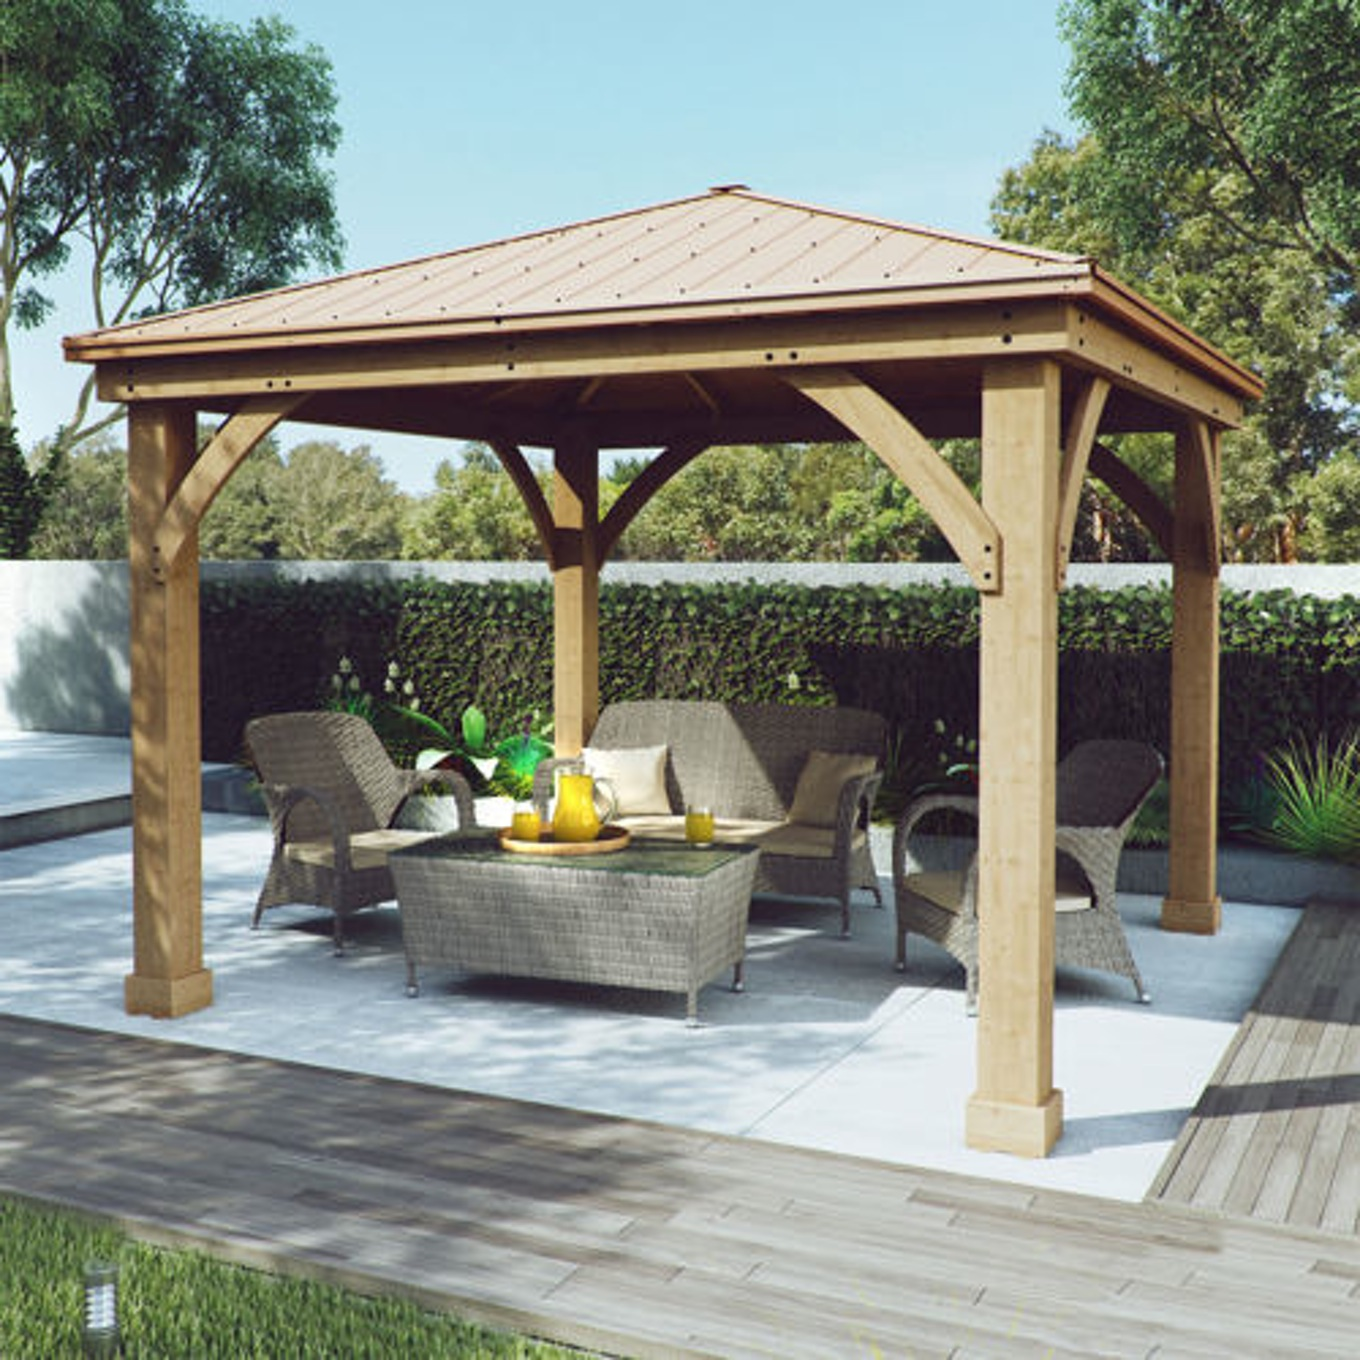 Wood and Aluminum Roof Gazebo